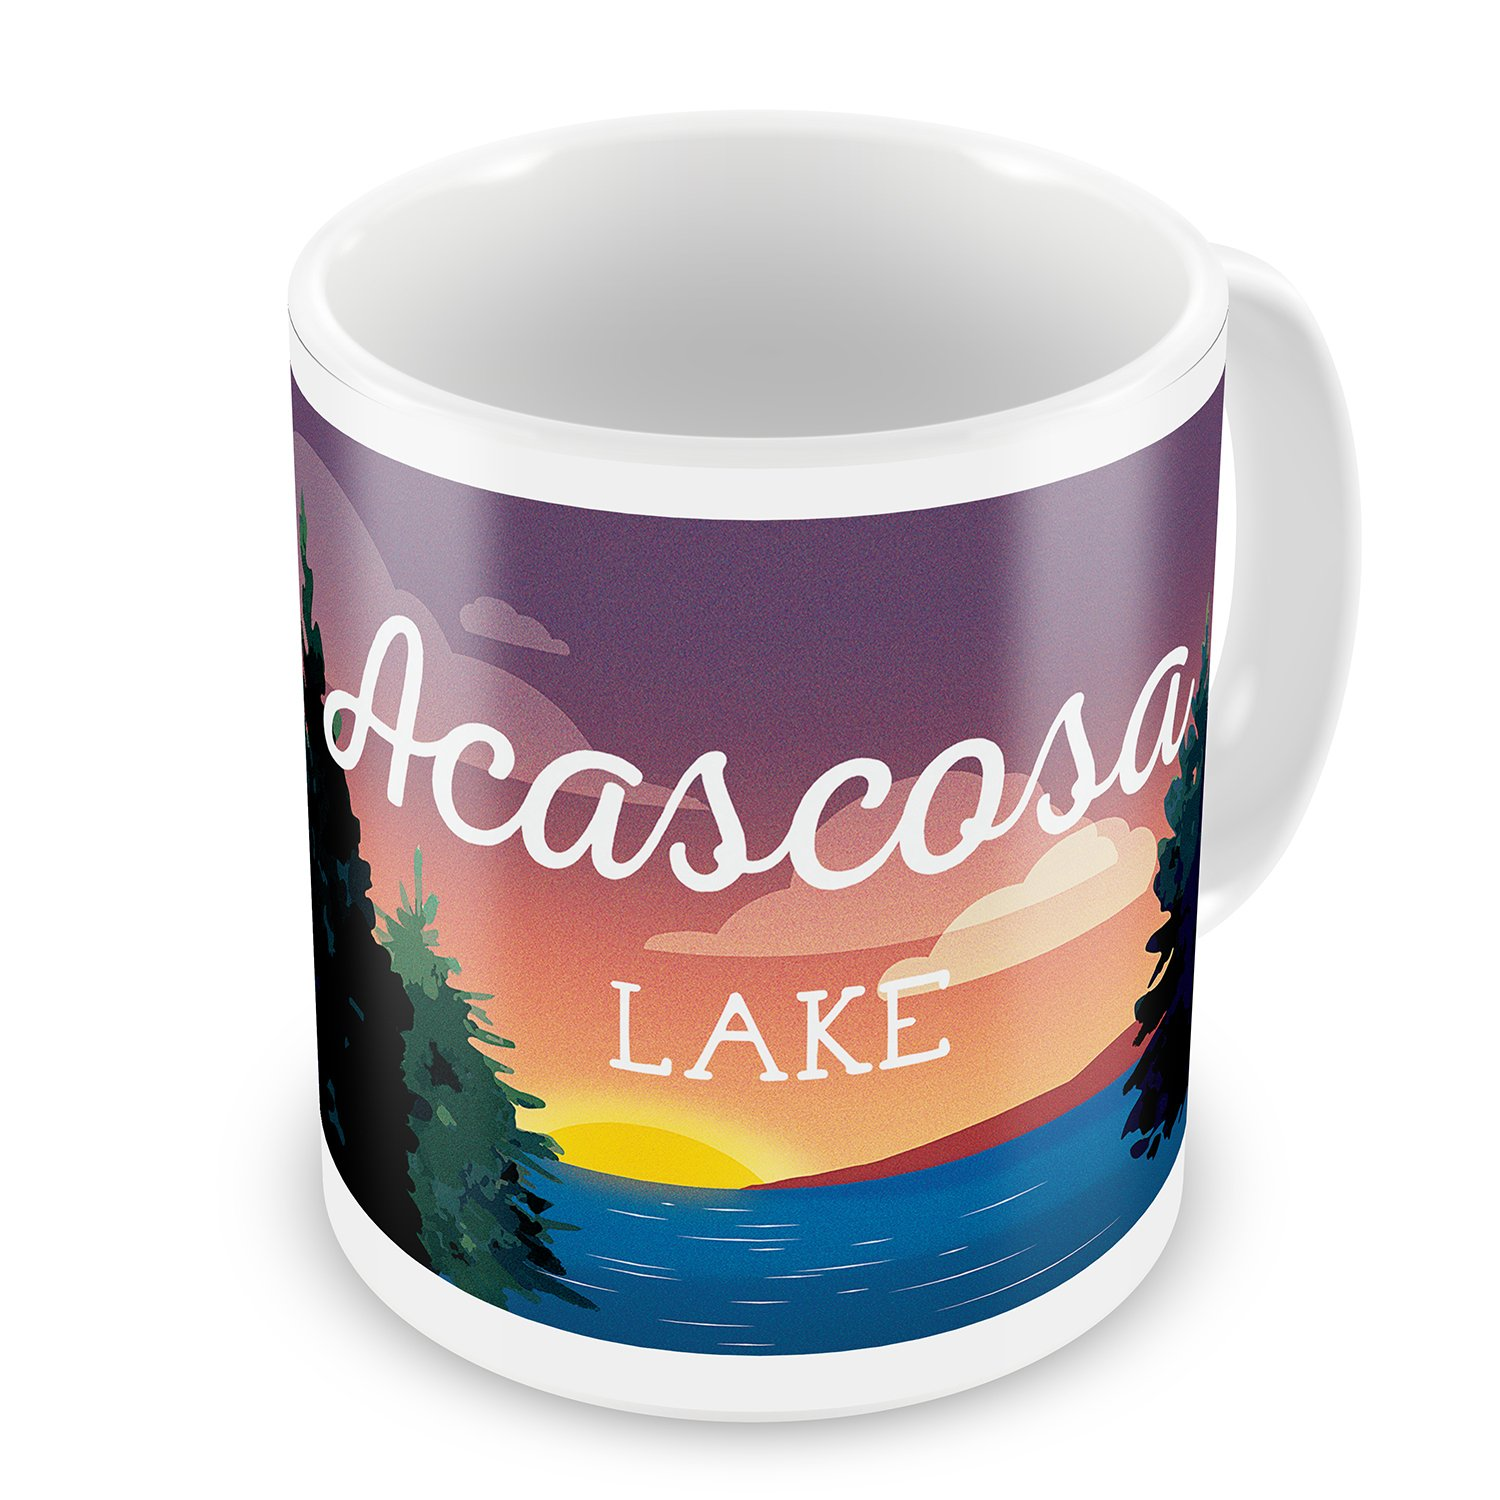 Amazon.com: Coffee Mug Lake retro design Acascosa Lake - NEONBLOND: Kitchen & Dining